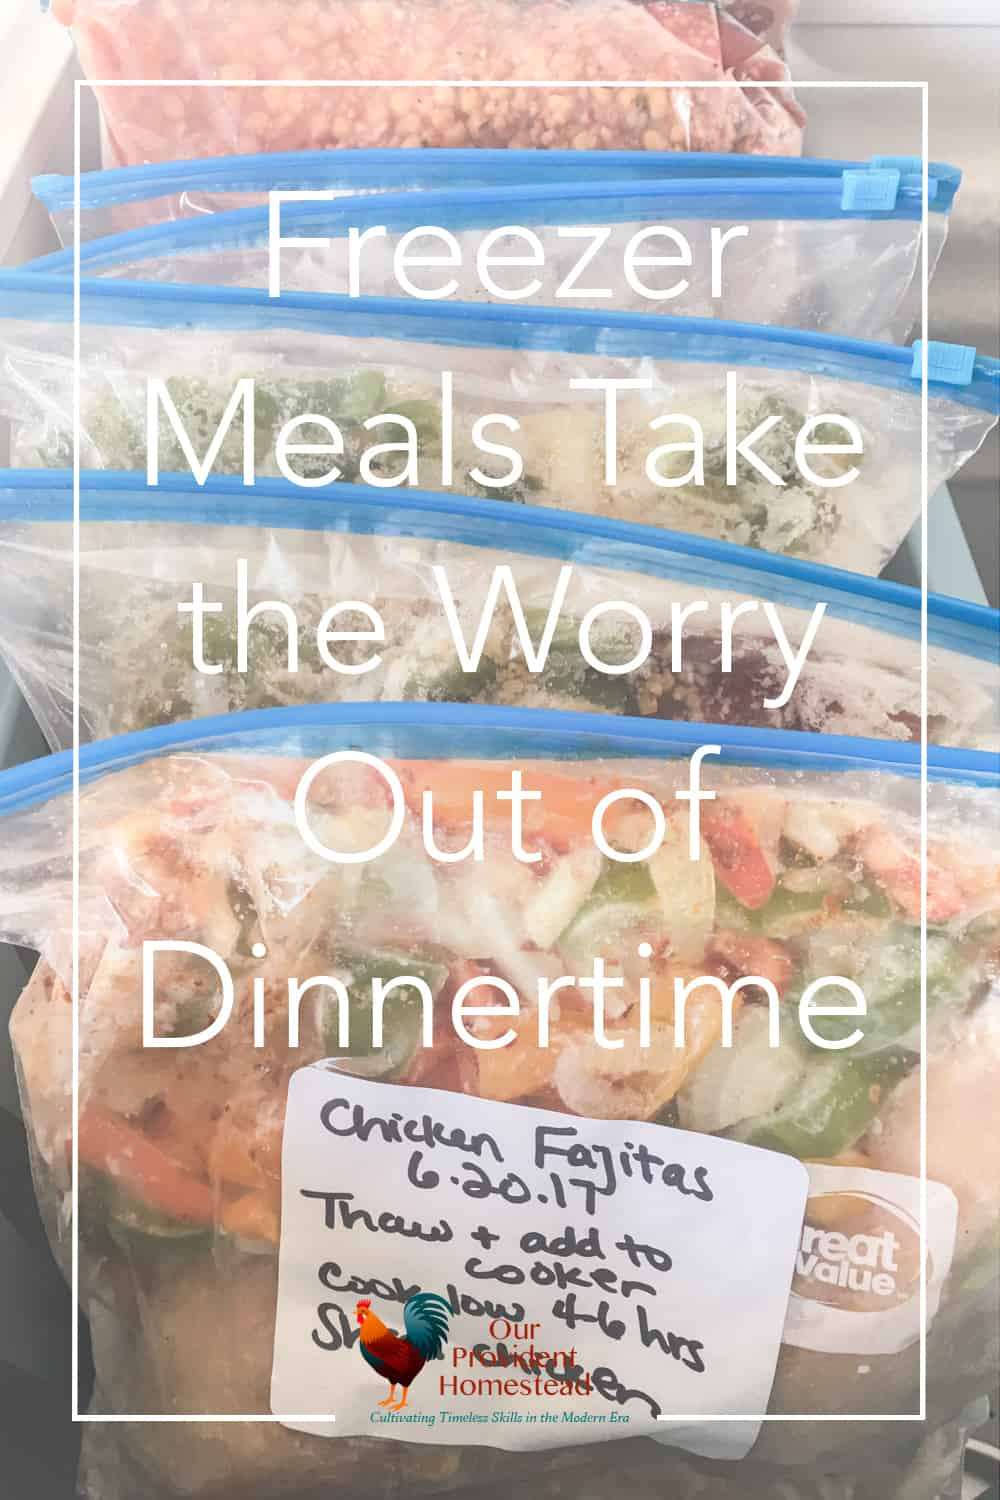 Do you have a hard time making a healthy meal at dinnertime? Click here to see how using freezer meals can save you time and money at your home. #freezermeals #healthymeals #savetime #homesteading